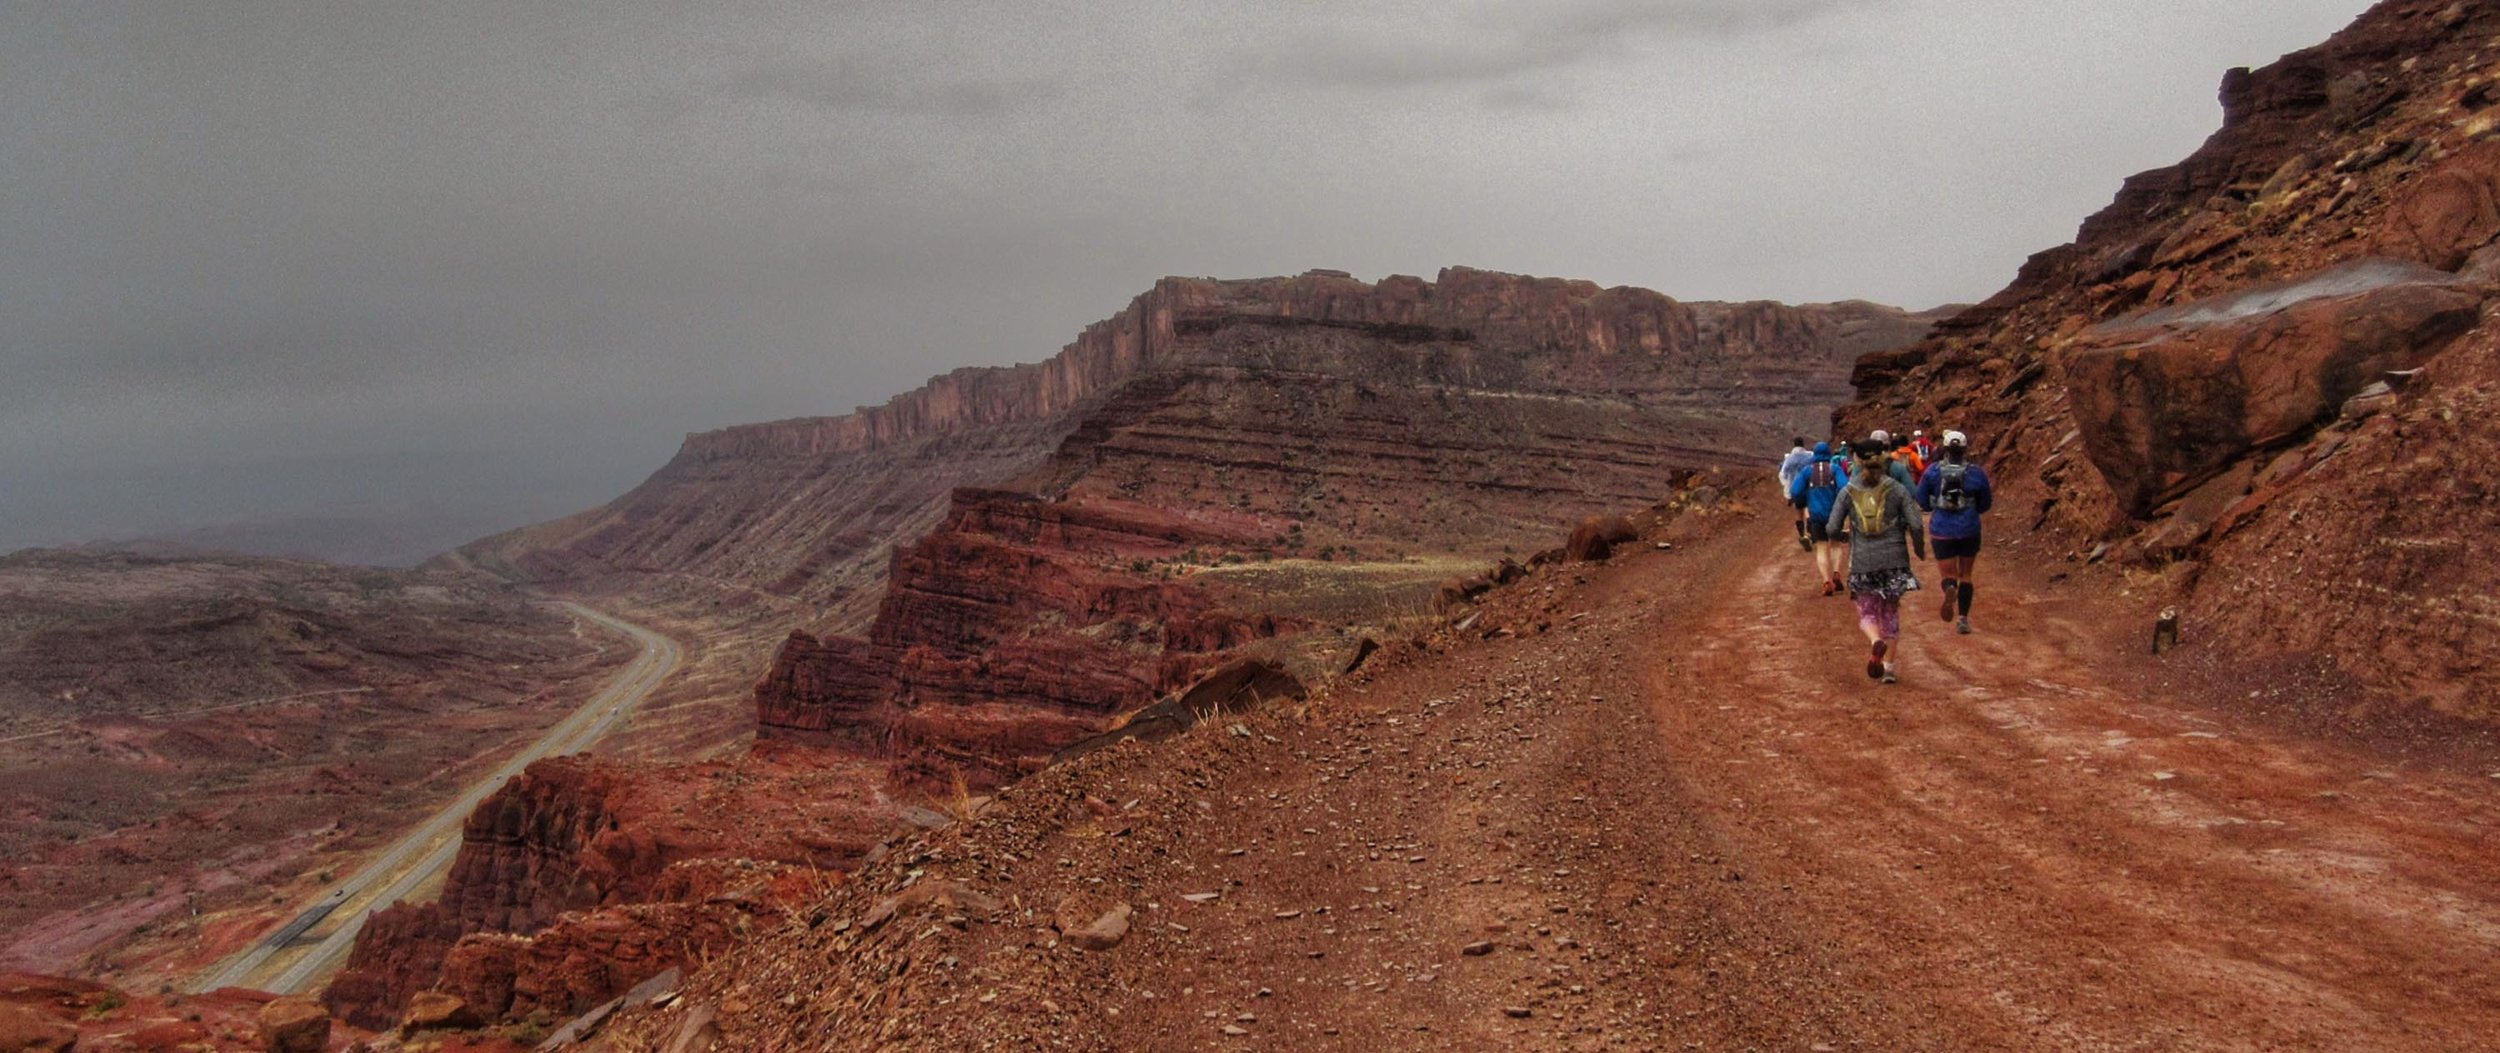 A trail race in Moab, UTah (Photo by the contributor of this story, anonymous)